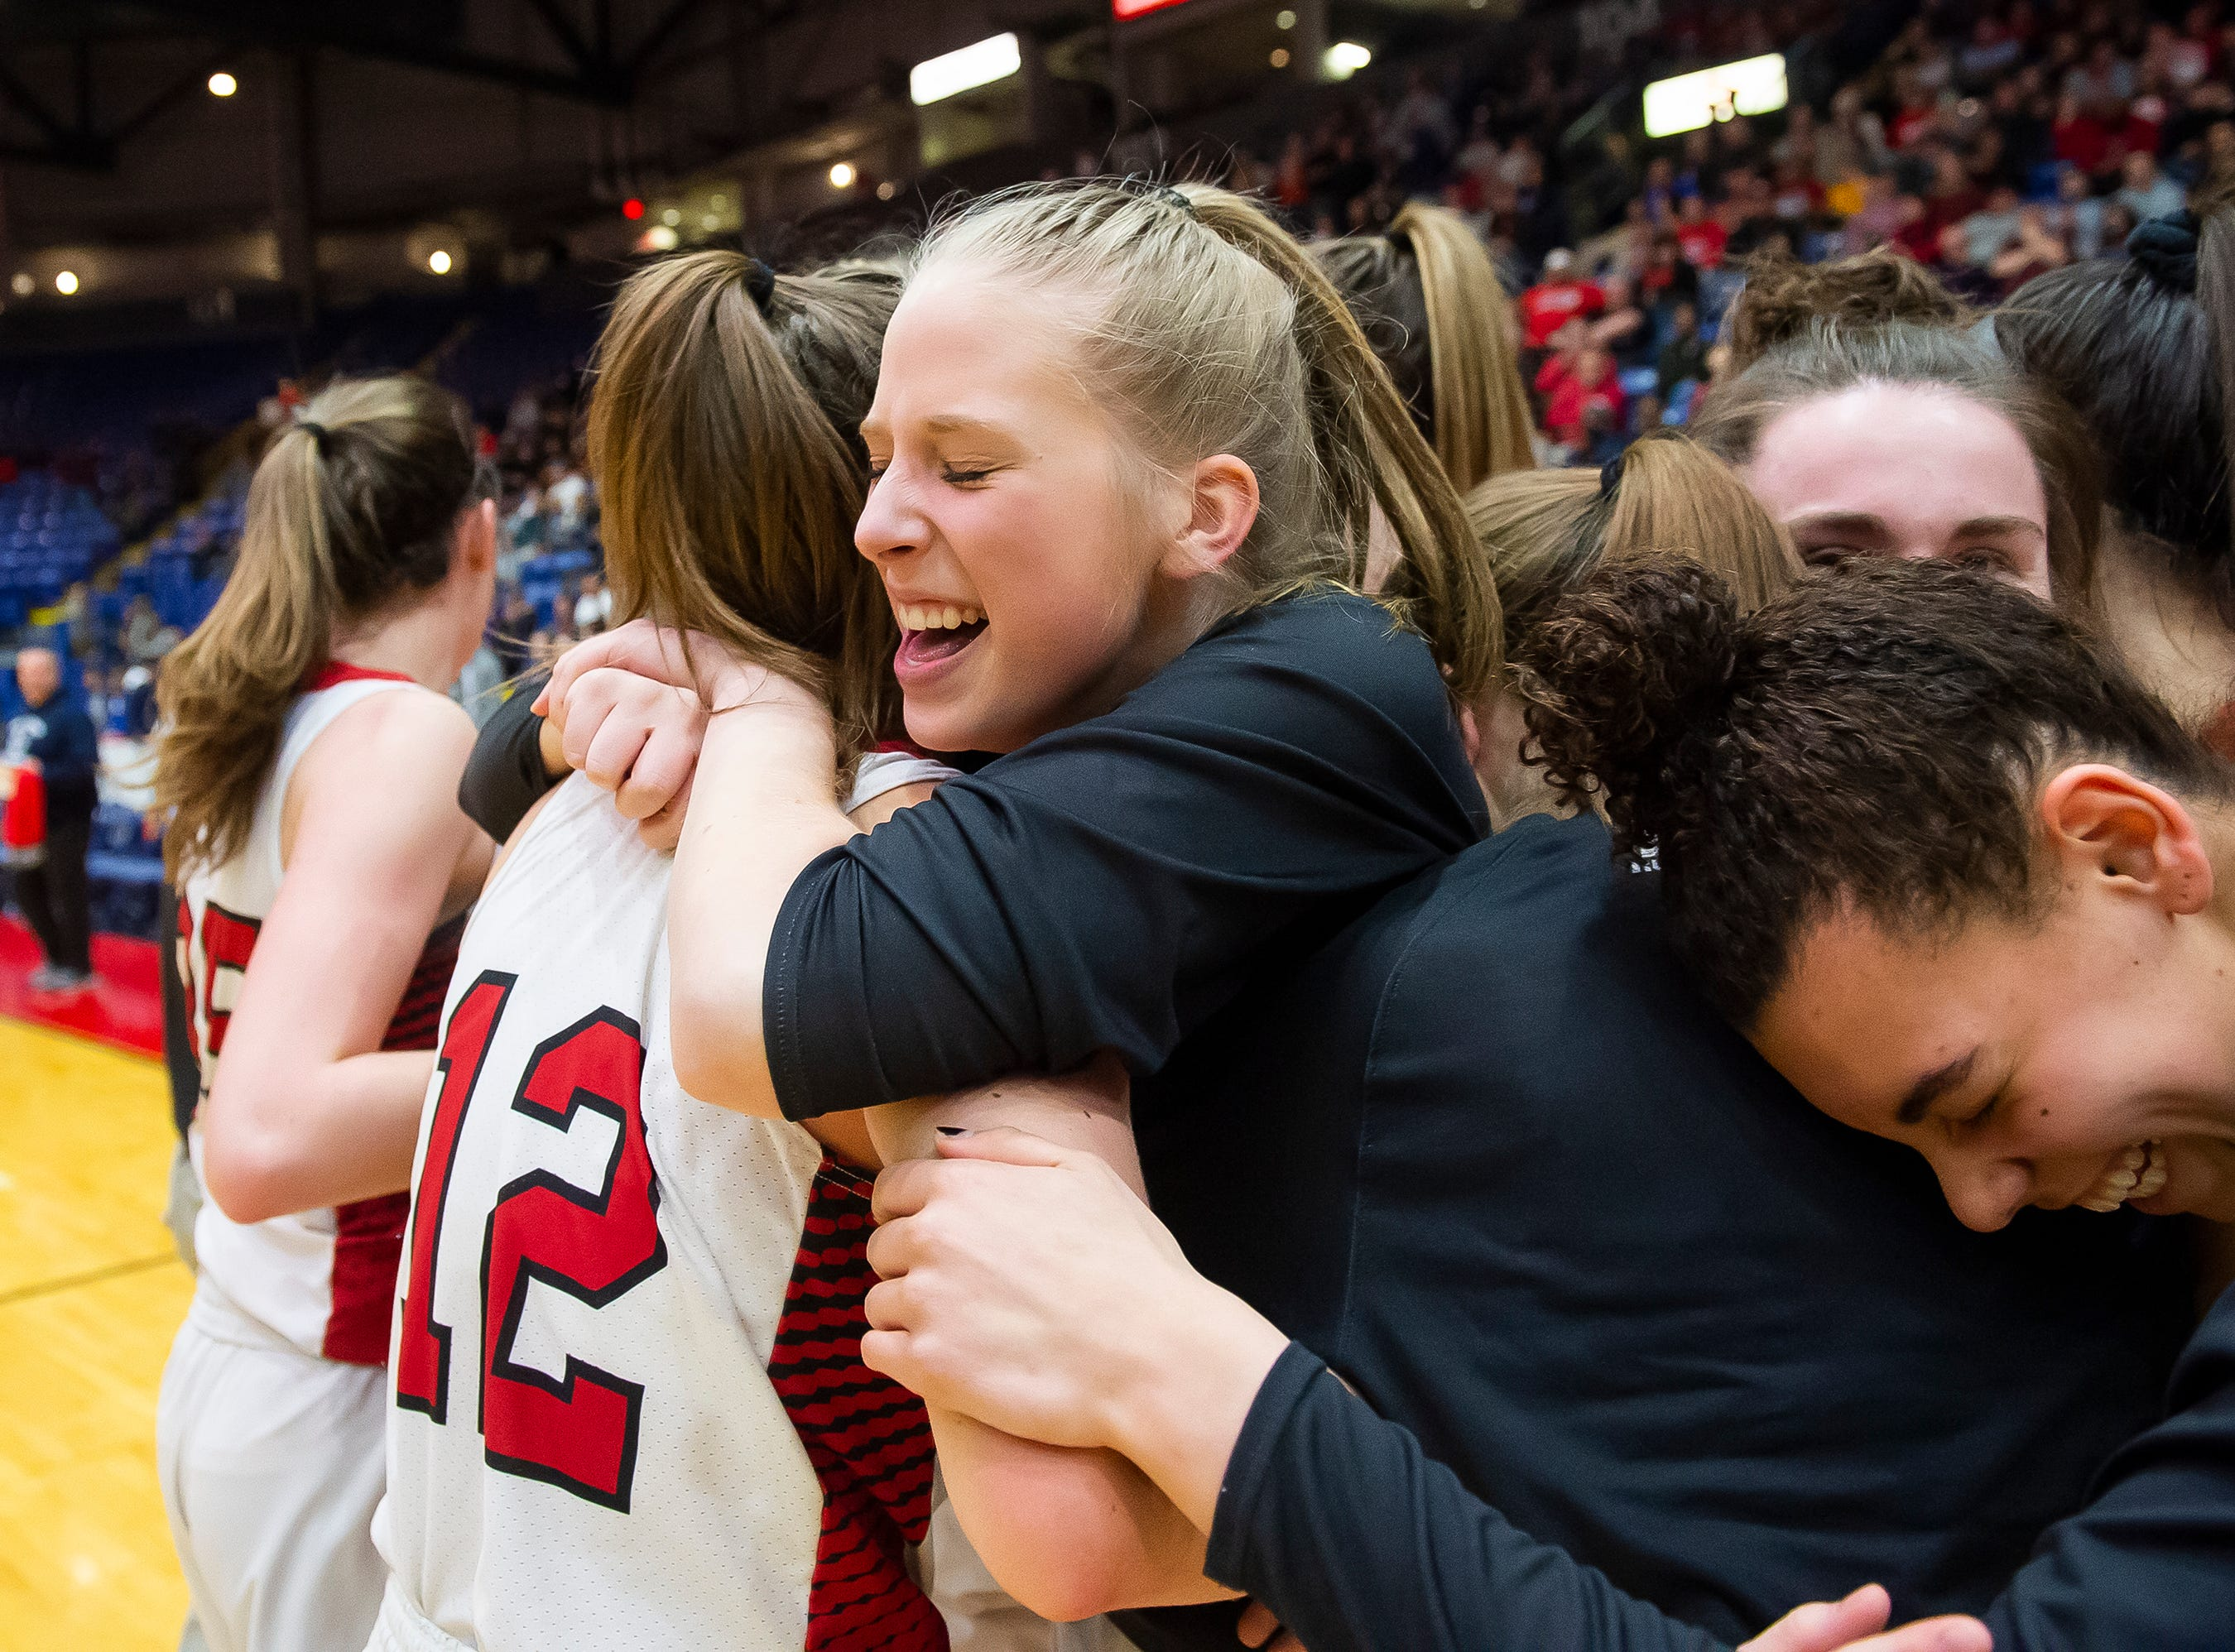 The Cumberland Valley Eagles celebrate after defeating Dallastown in the District 3 6A girls championship game at Santander Arena in Reading, Pa., Friday, March 1, 2019. The Eagles won 33-27.